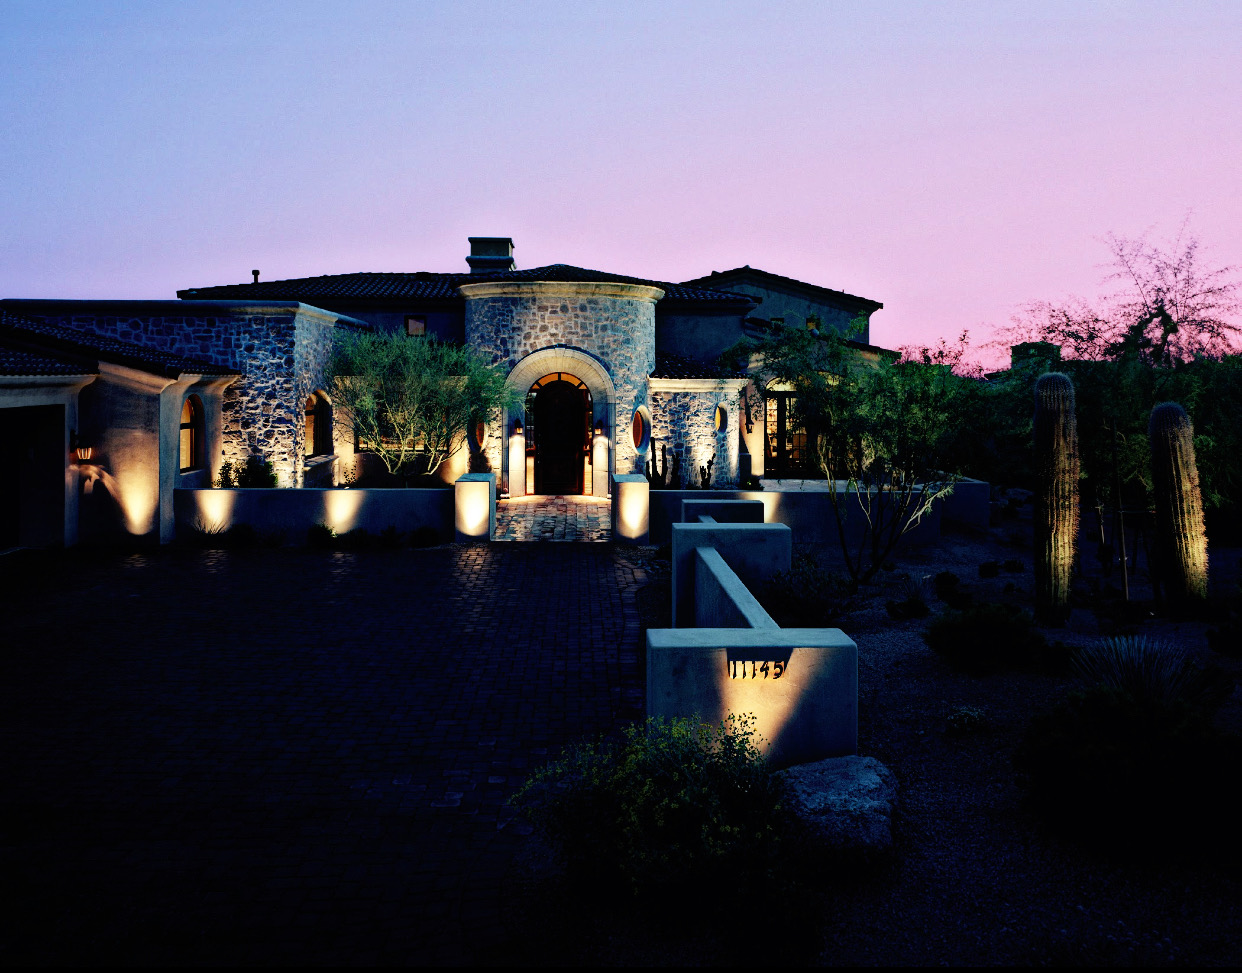 Residential landscape lighting surrounding large home at dusk